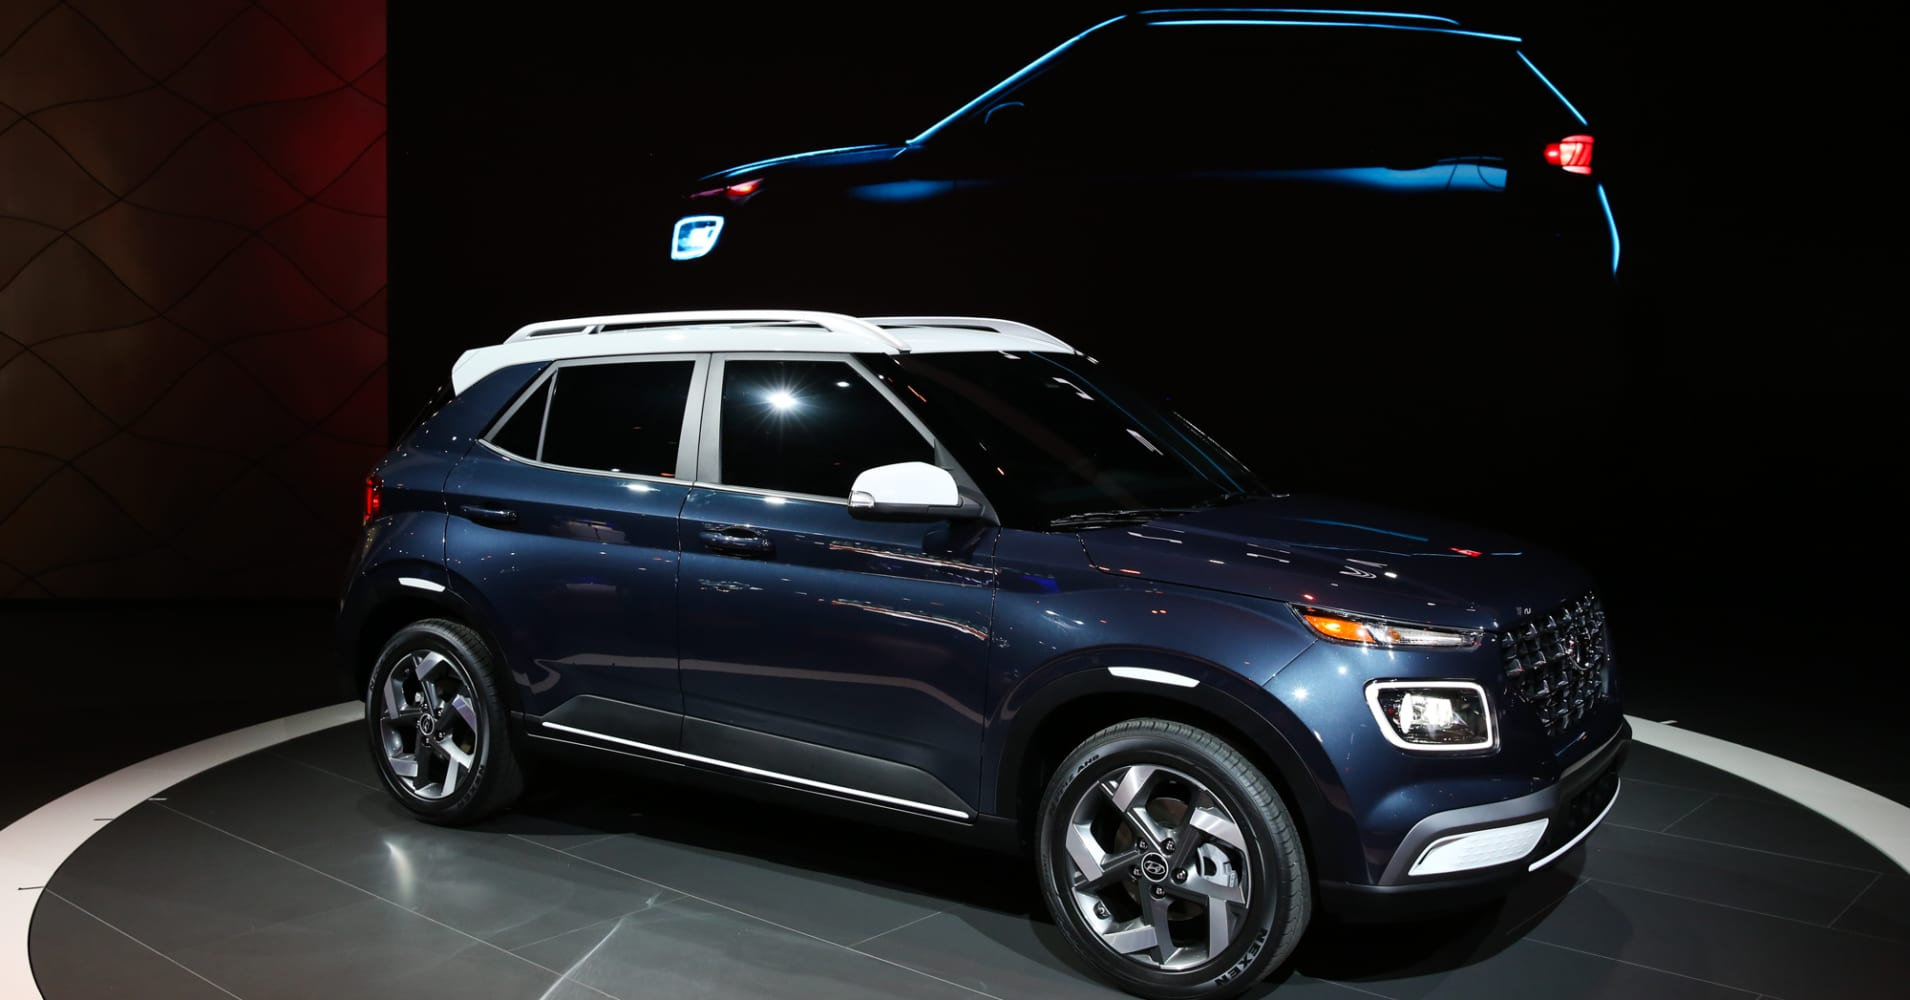 Hyundai aiming for entry-level and used-car buyers with new, under $20,000 SUV - CNBC